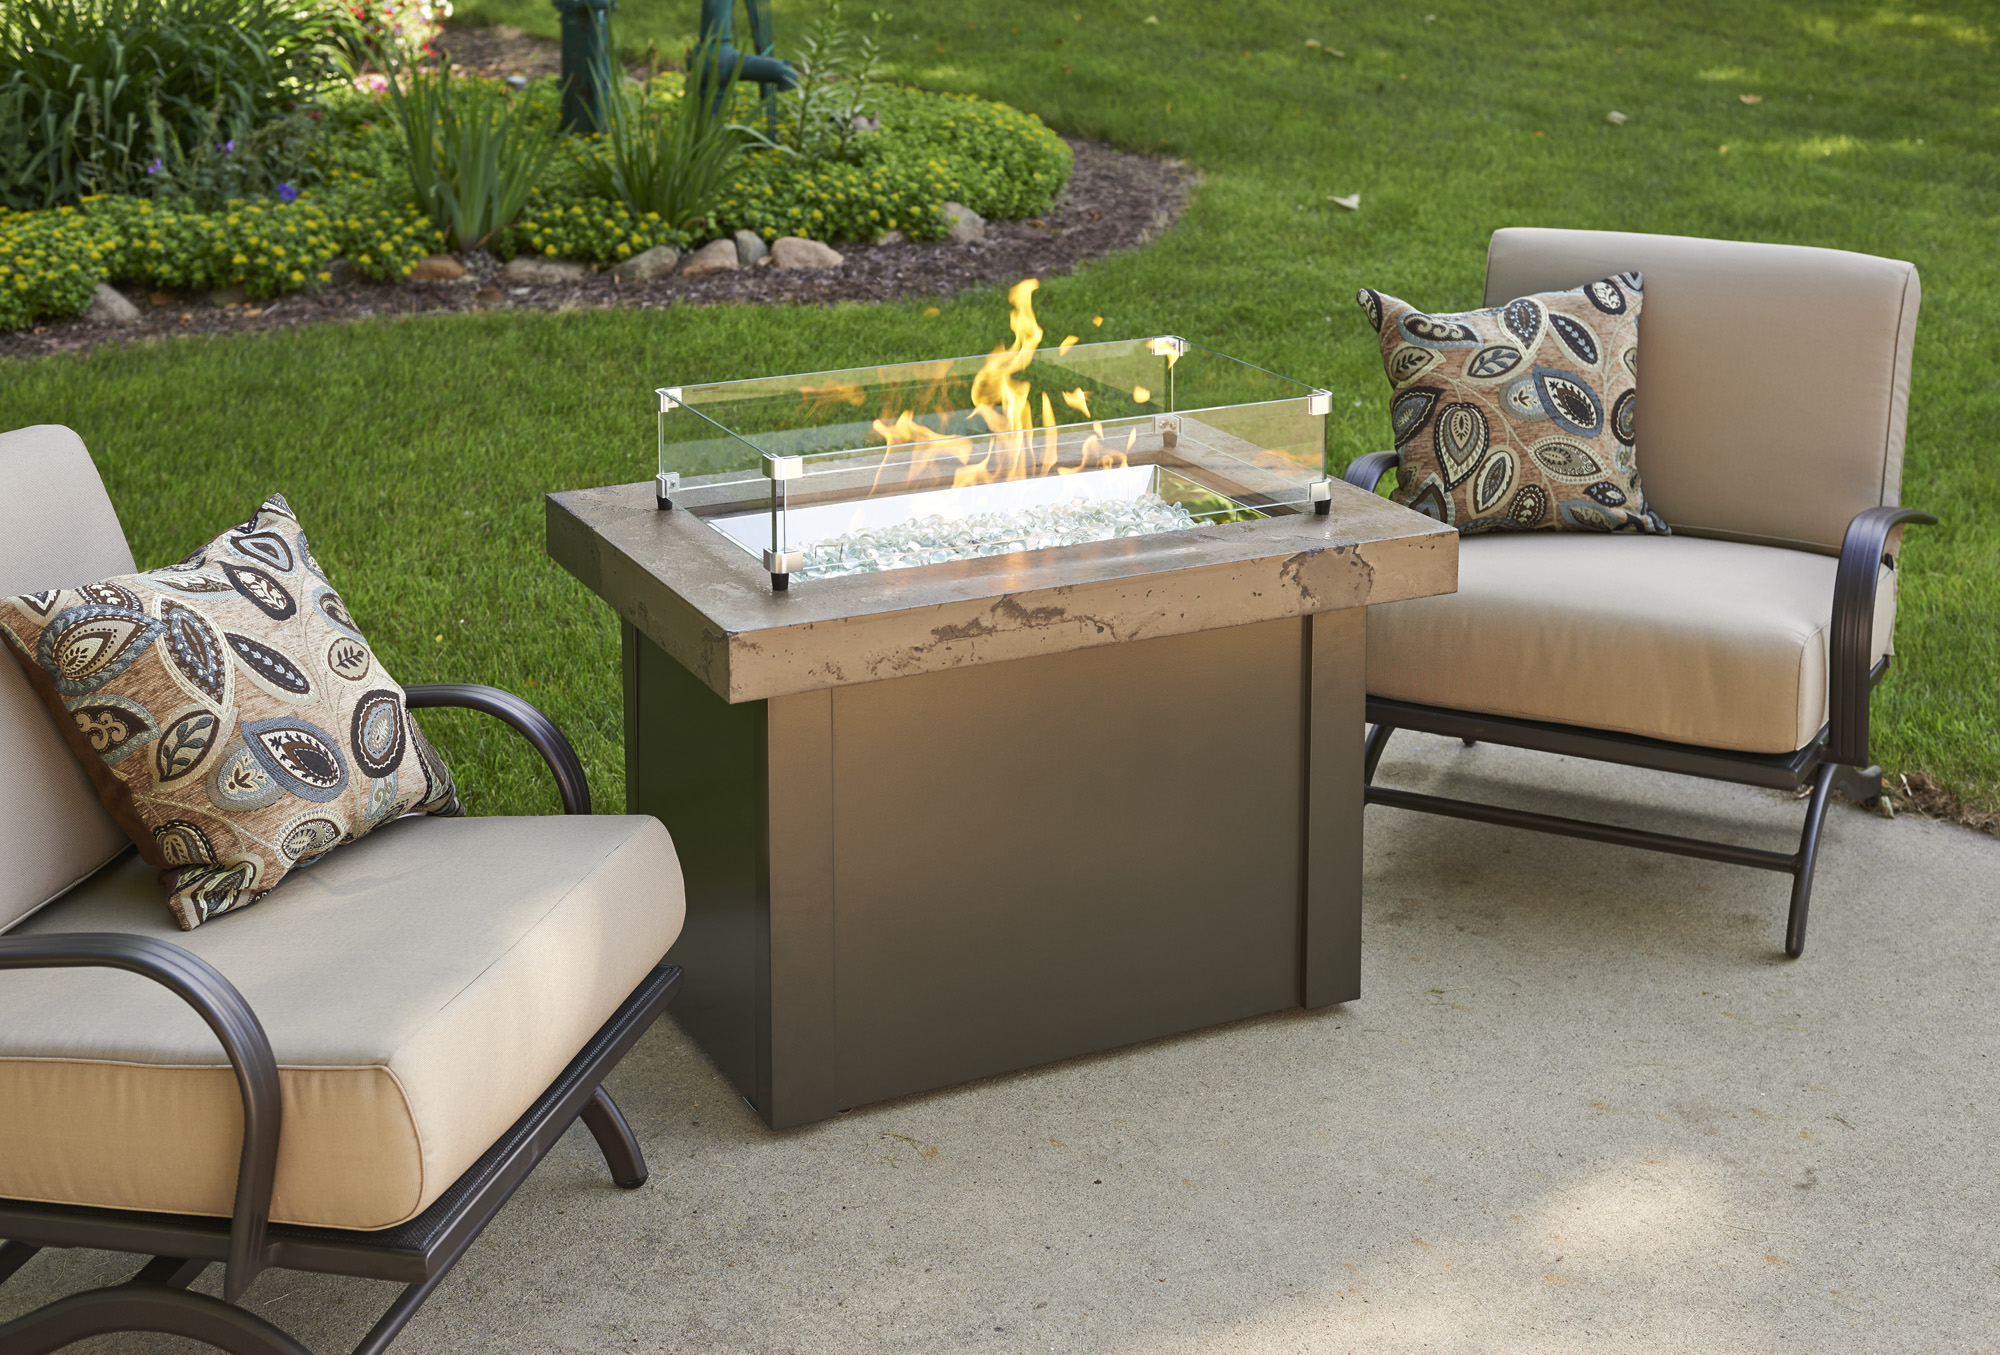 Providence, Cove 30, promotion, sale, fire pit, firepit, fire table,  firetable, Outdoor Greatroom Company